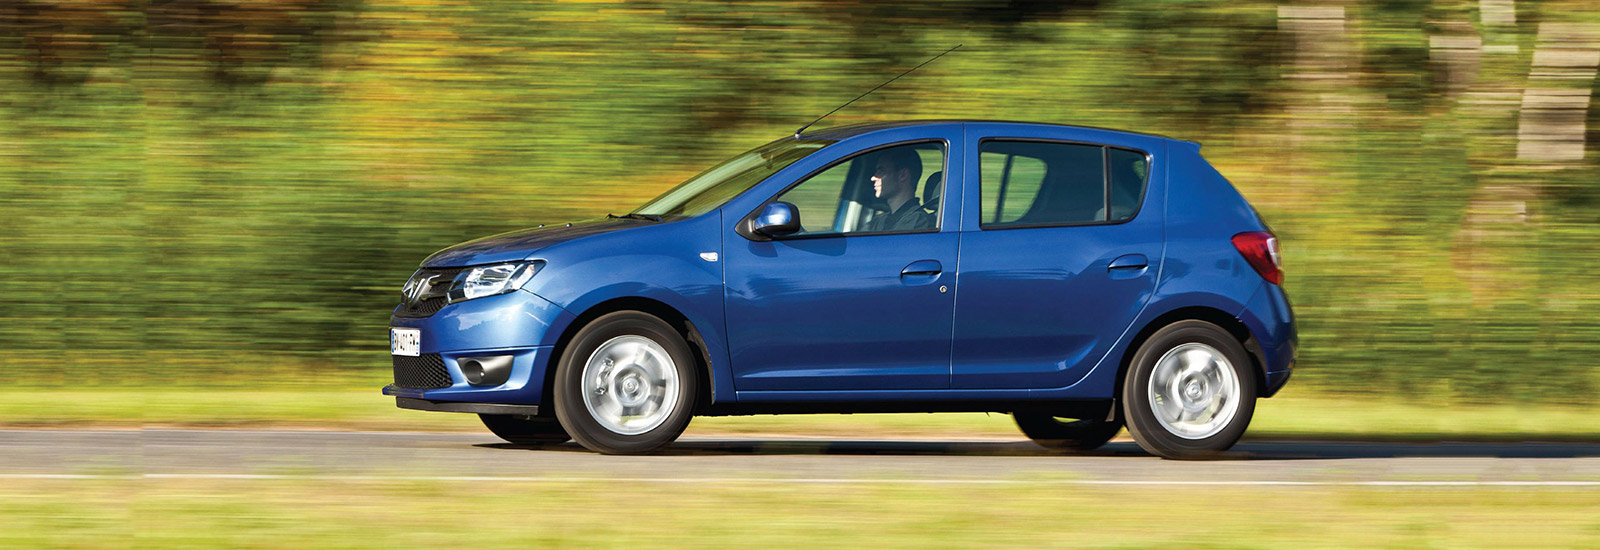 The Dacia Sandero Falls Into The Supermini Category Which Means It Cant Get Away With Being Too Small The Good News Is That Its Just The Kind Of Size